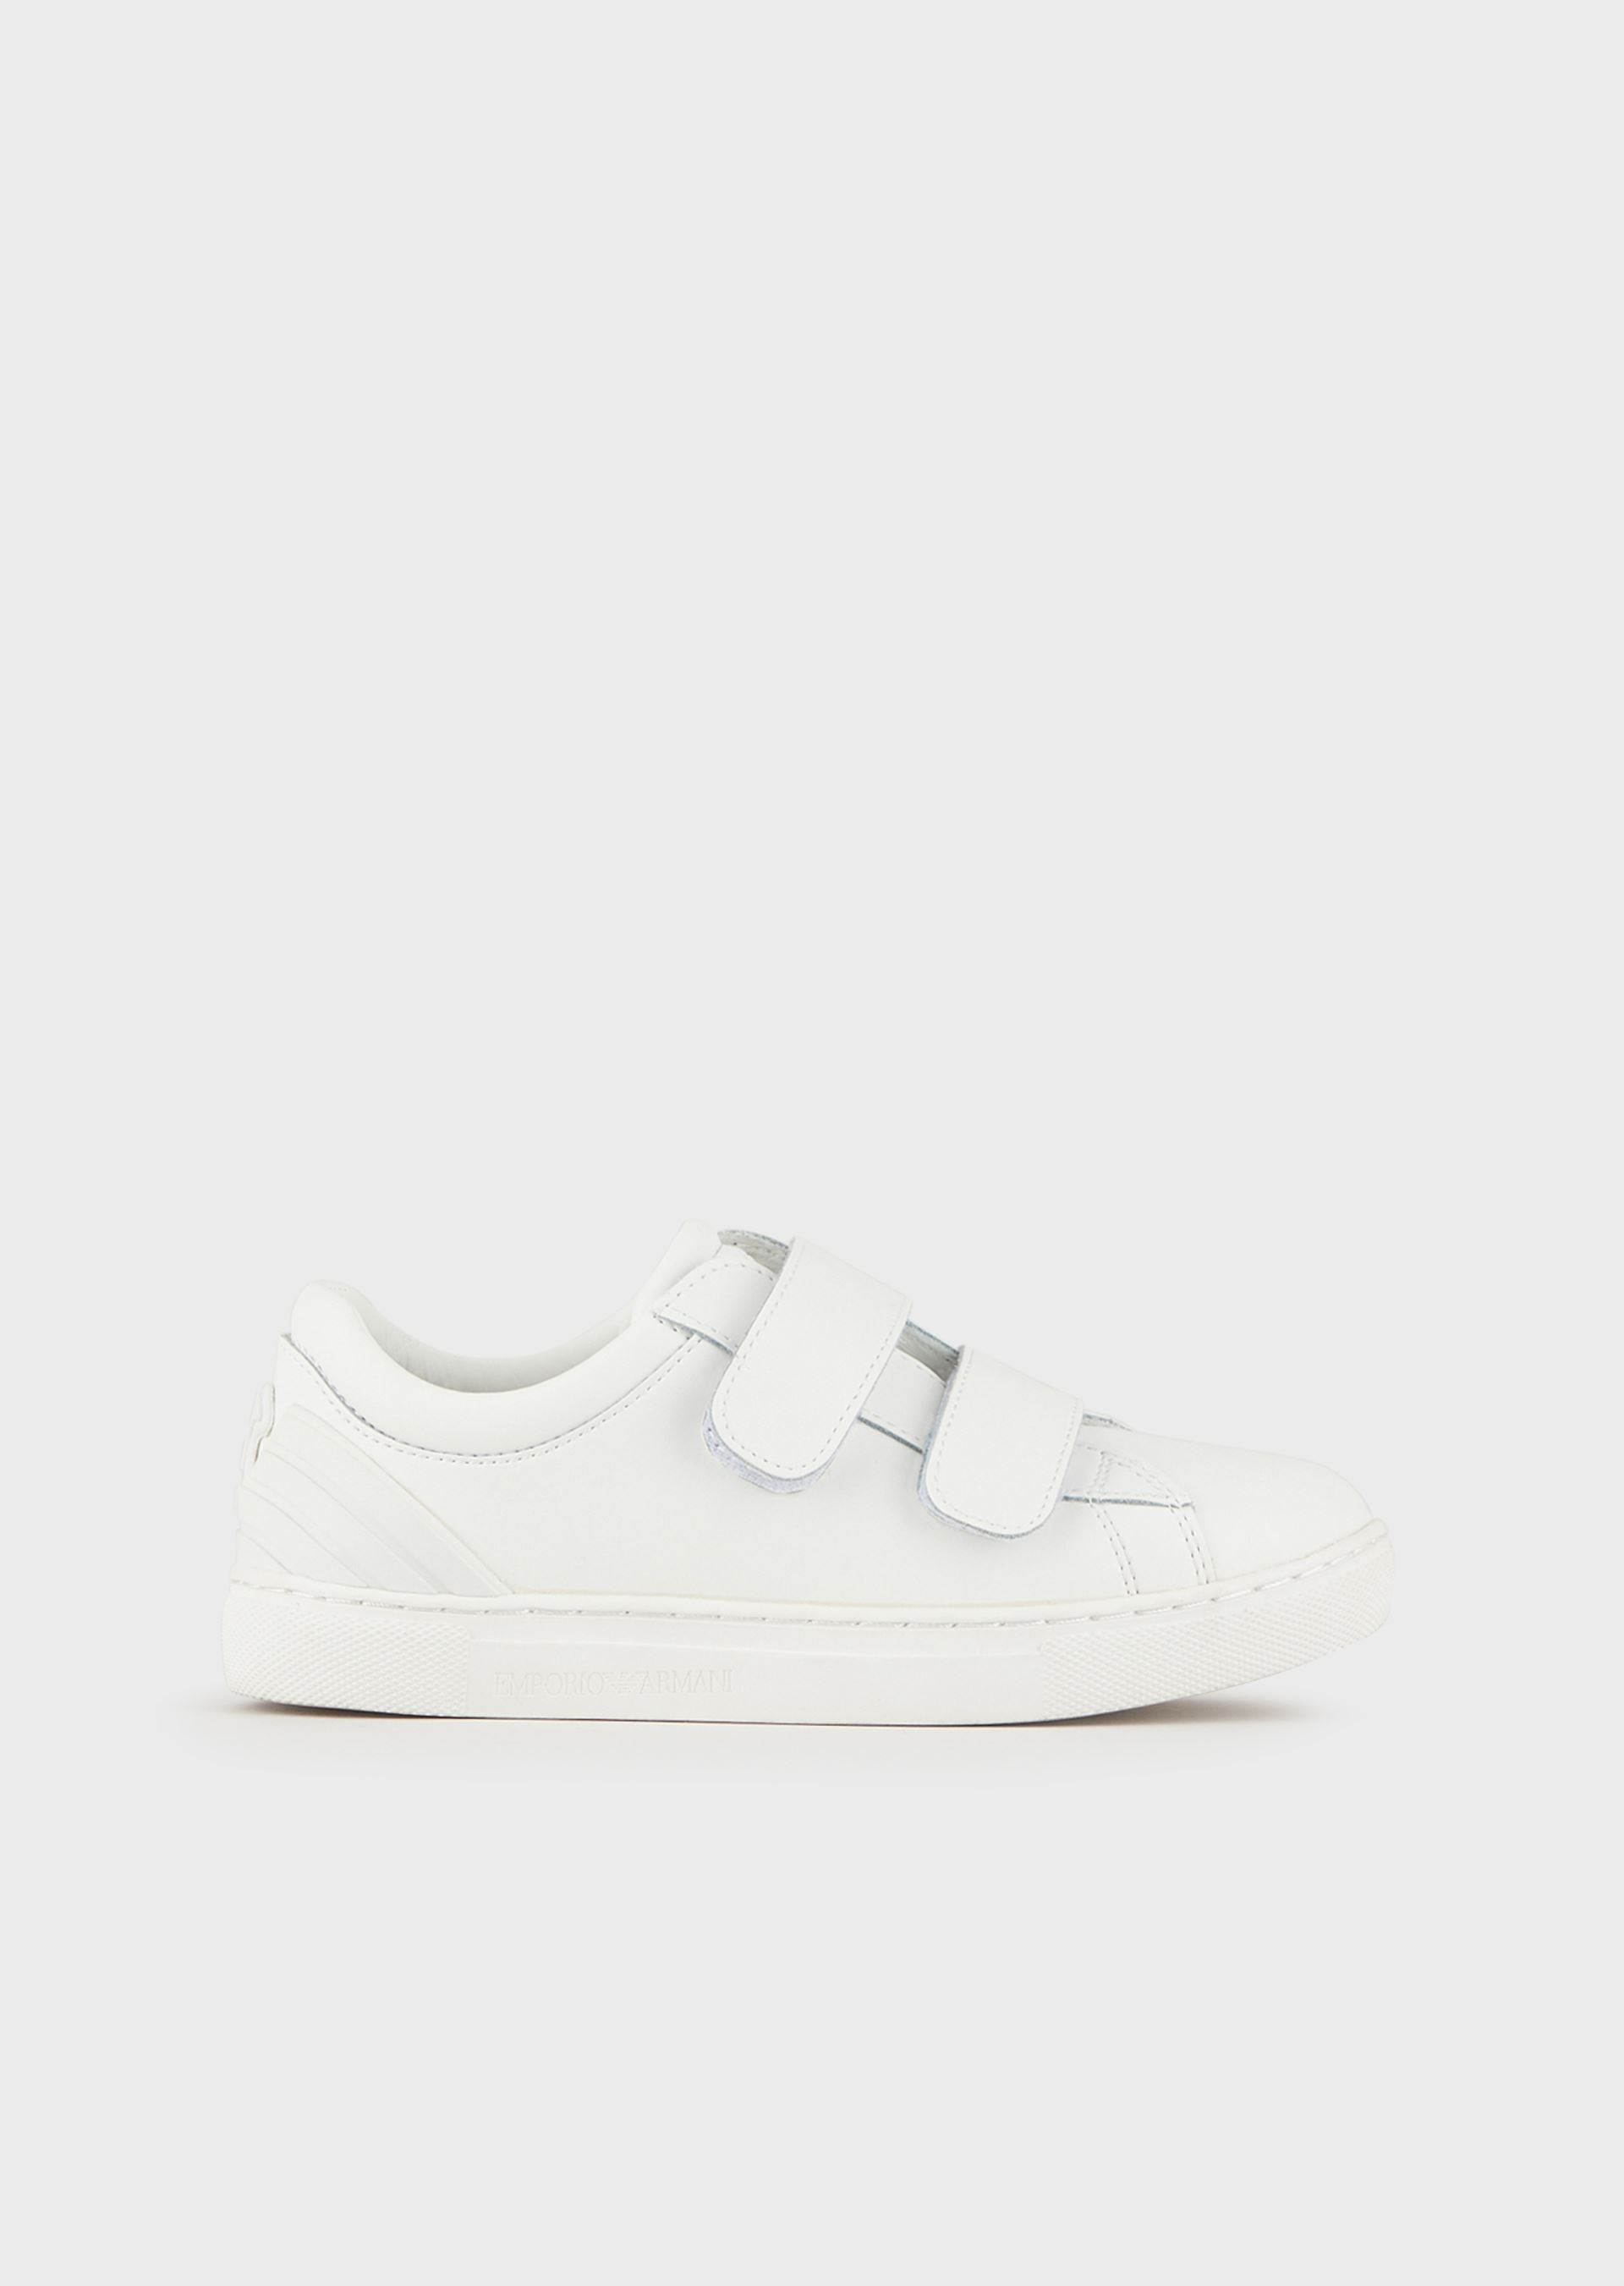 EMPORIO ARMANI Leather sneakers with eagle logo on the back